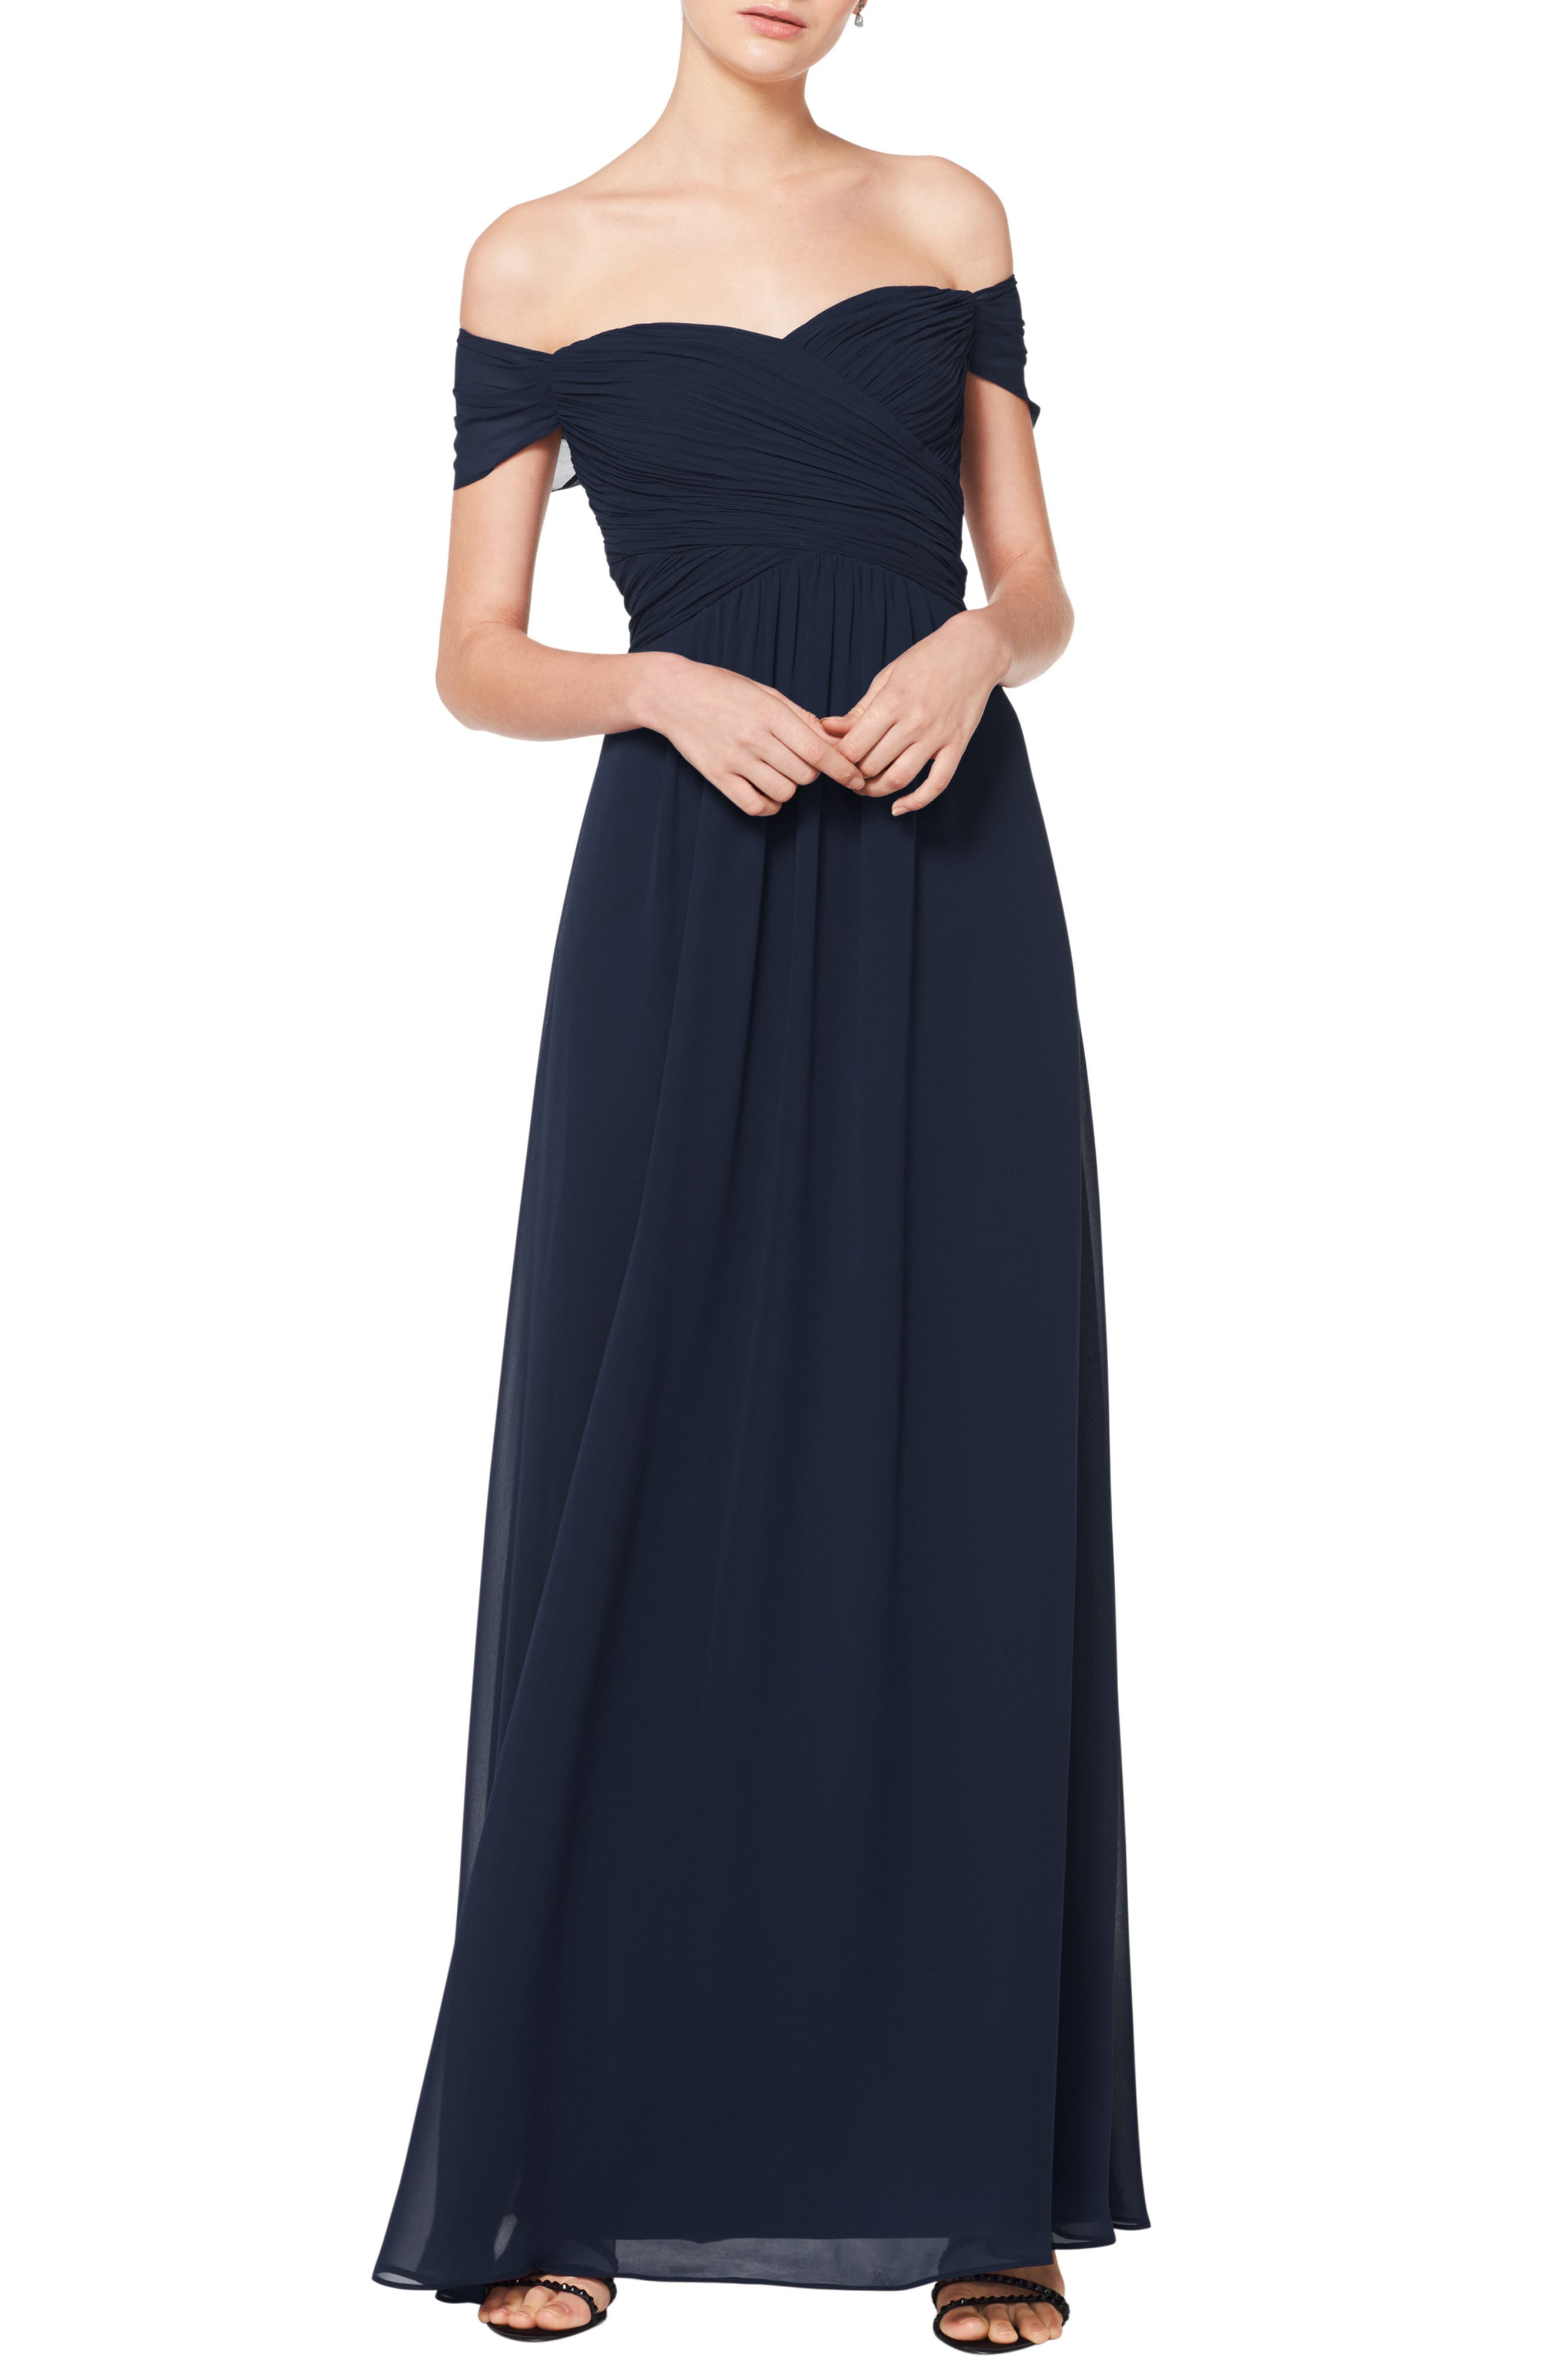 Simply romantic, with slender pleats and flowing chiffon, this shoulder-baring gown looks effortlessly elegant-because it is. The A-line silhouette makes the dress effortlessly flattering and perfect for bridesmaids or wearing to a formal event. Style Name:#levkoff Off The Shoulder Chiffon A-Line Gown. Style Number: 5774986. Available in stores.